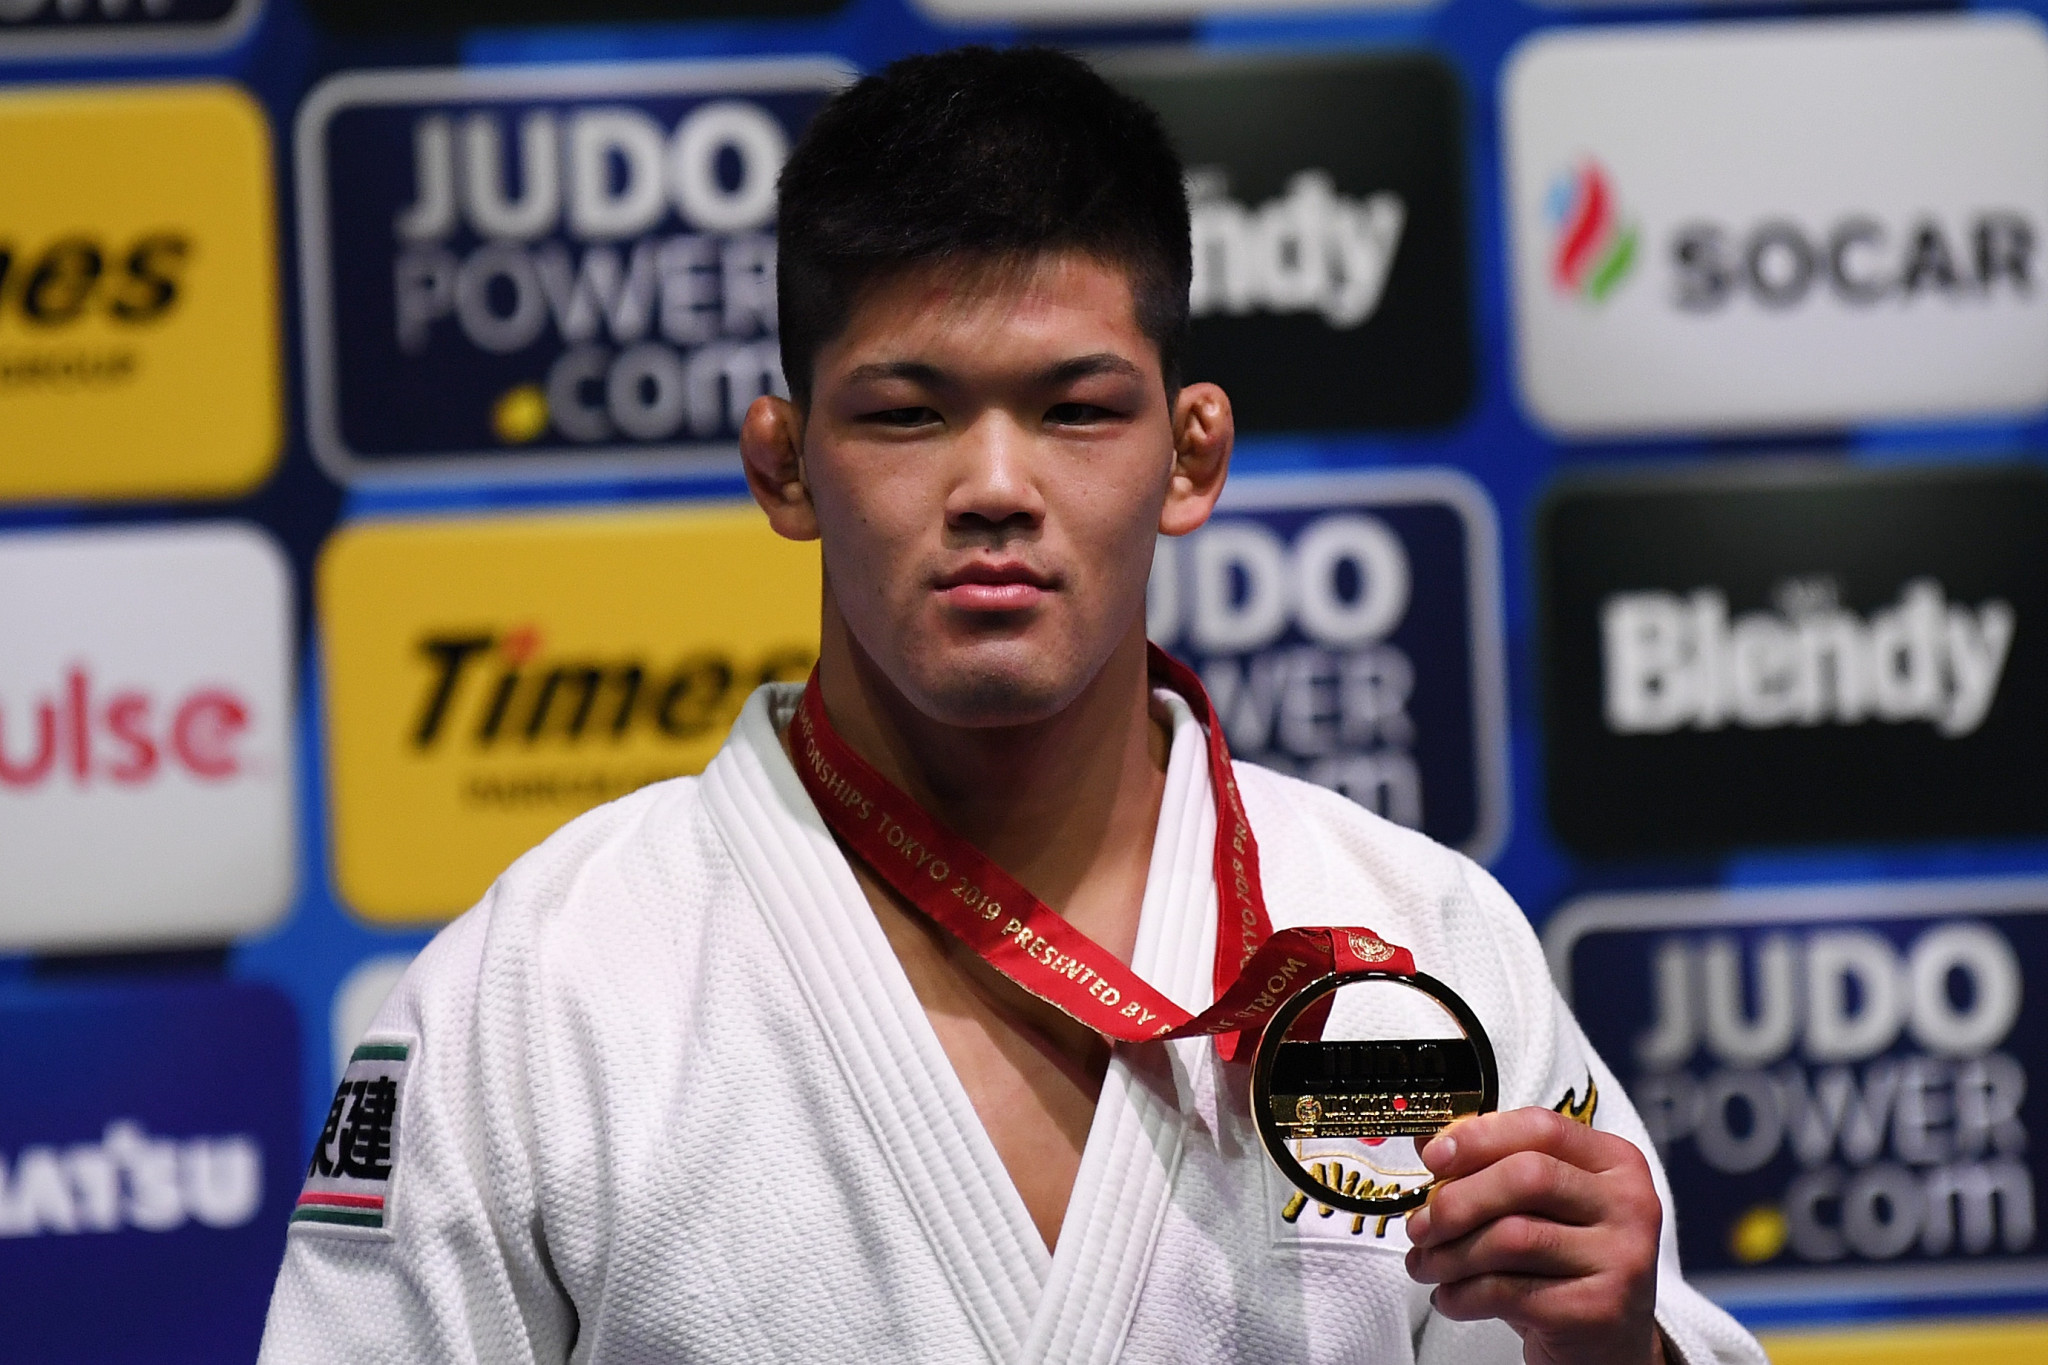 Ono returns to IJF World Championships with third gold, as Deguchi earns homecoming victory